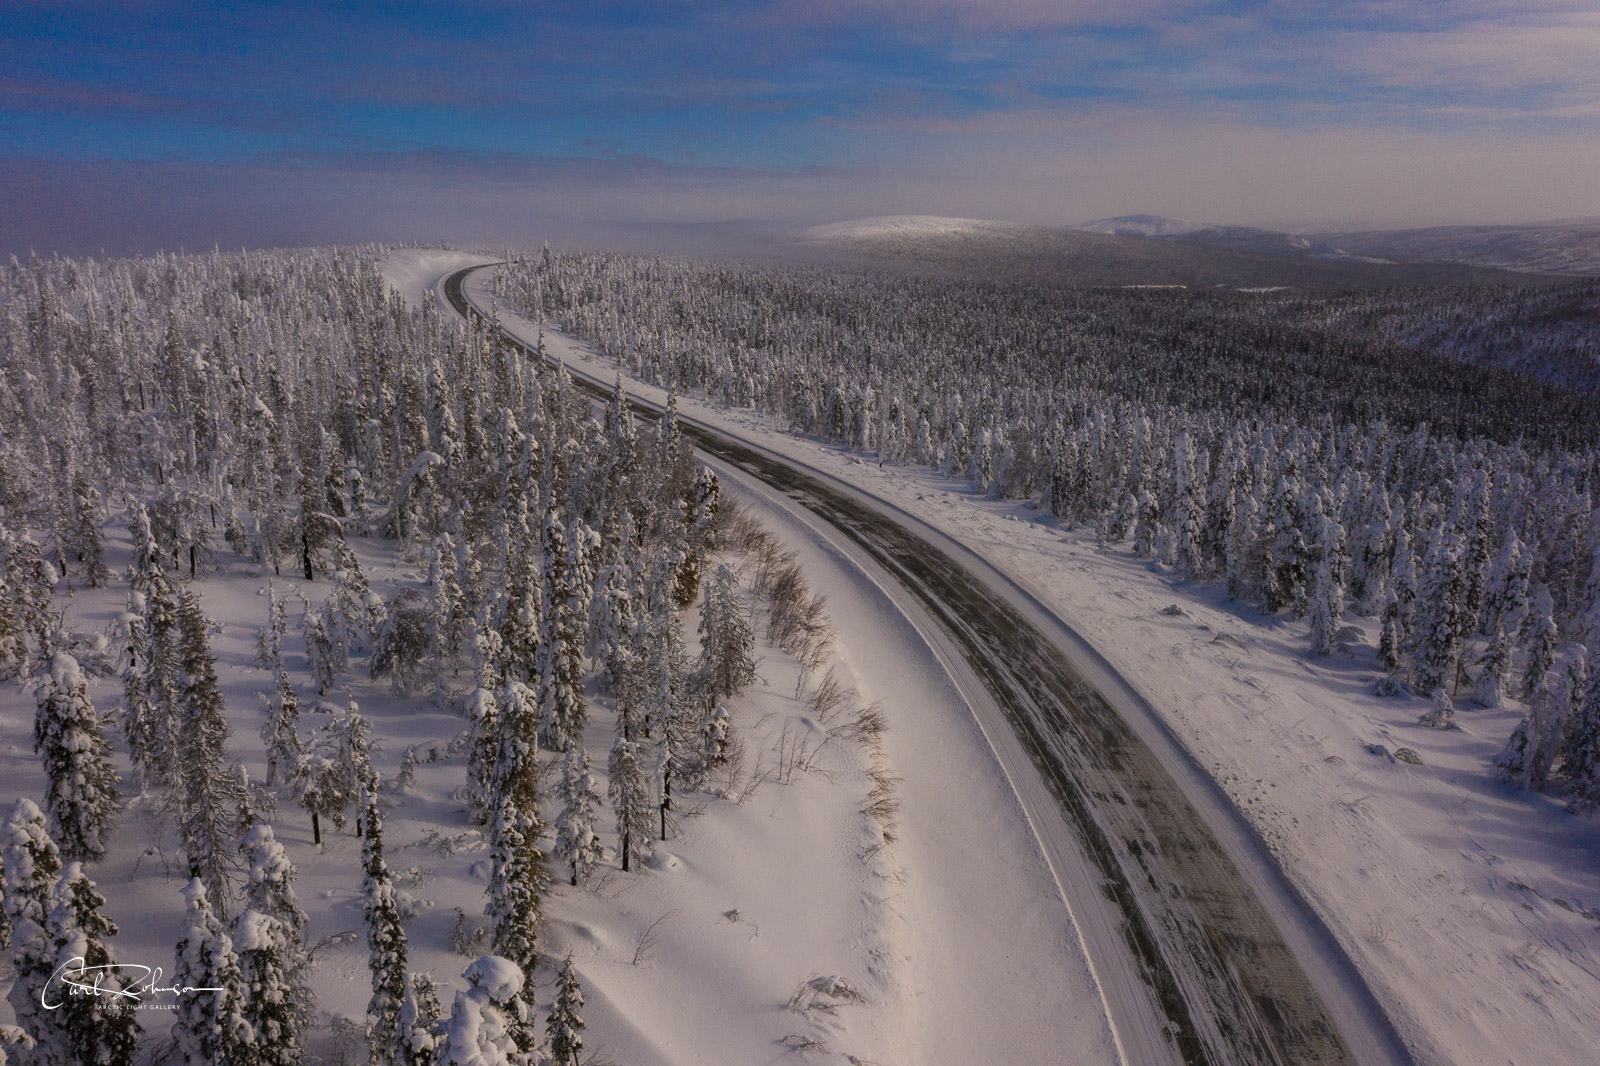 The Dalton Highway winds its way through a grove of snowy trees near the Yukon River.